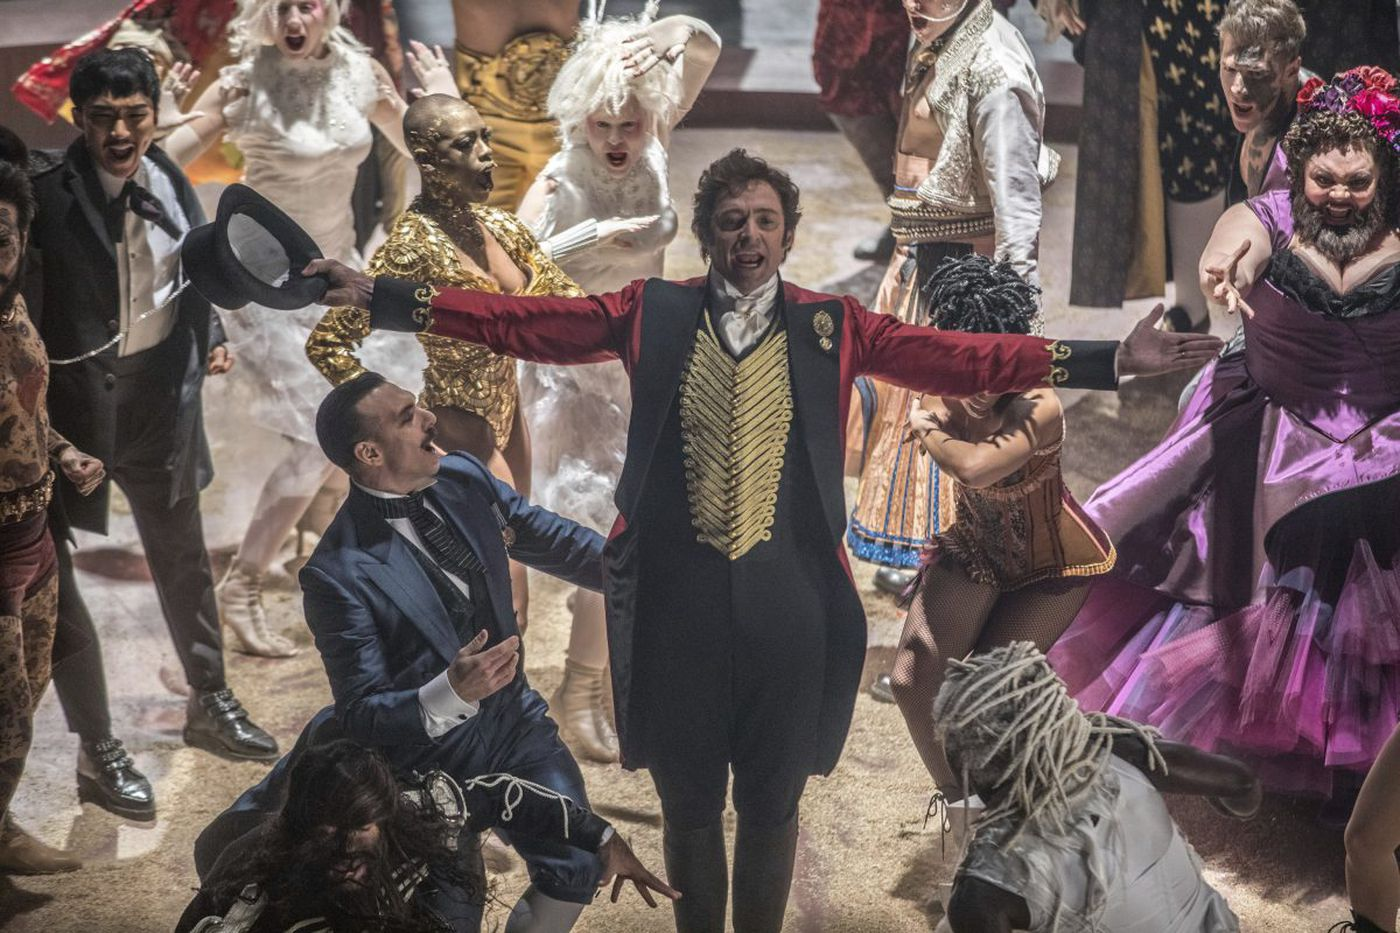 'The Greatest Showman' is the latest Hollywood whitewashing of America's racist past | Opinion